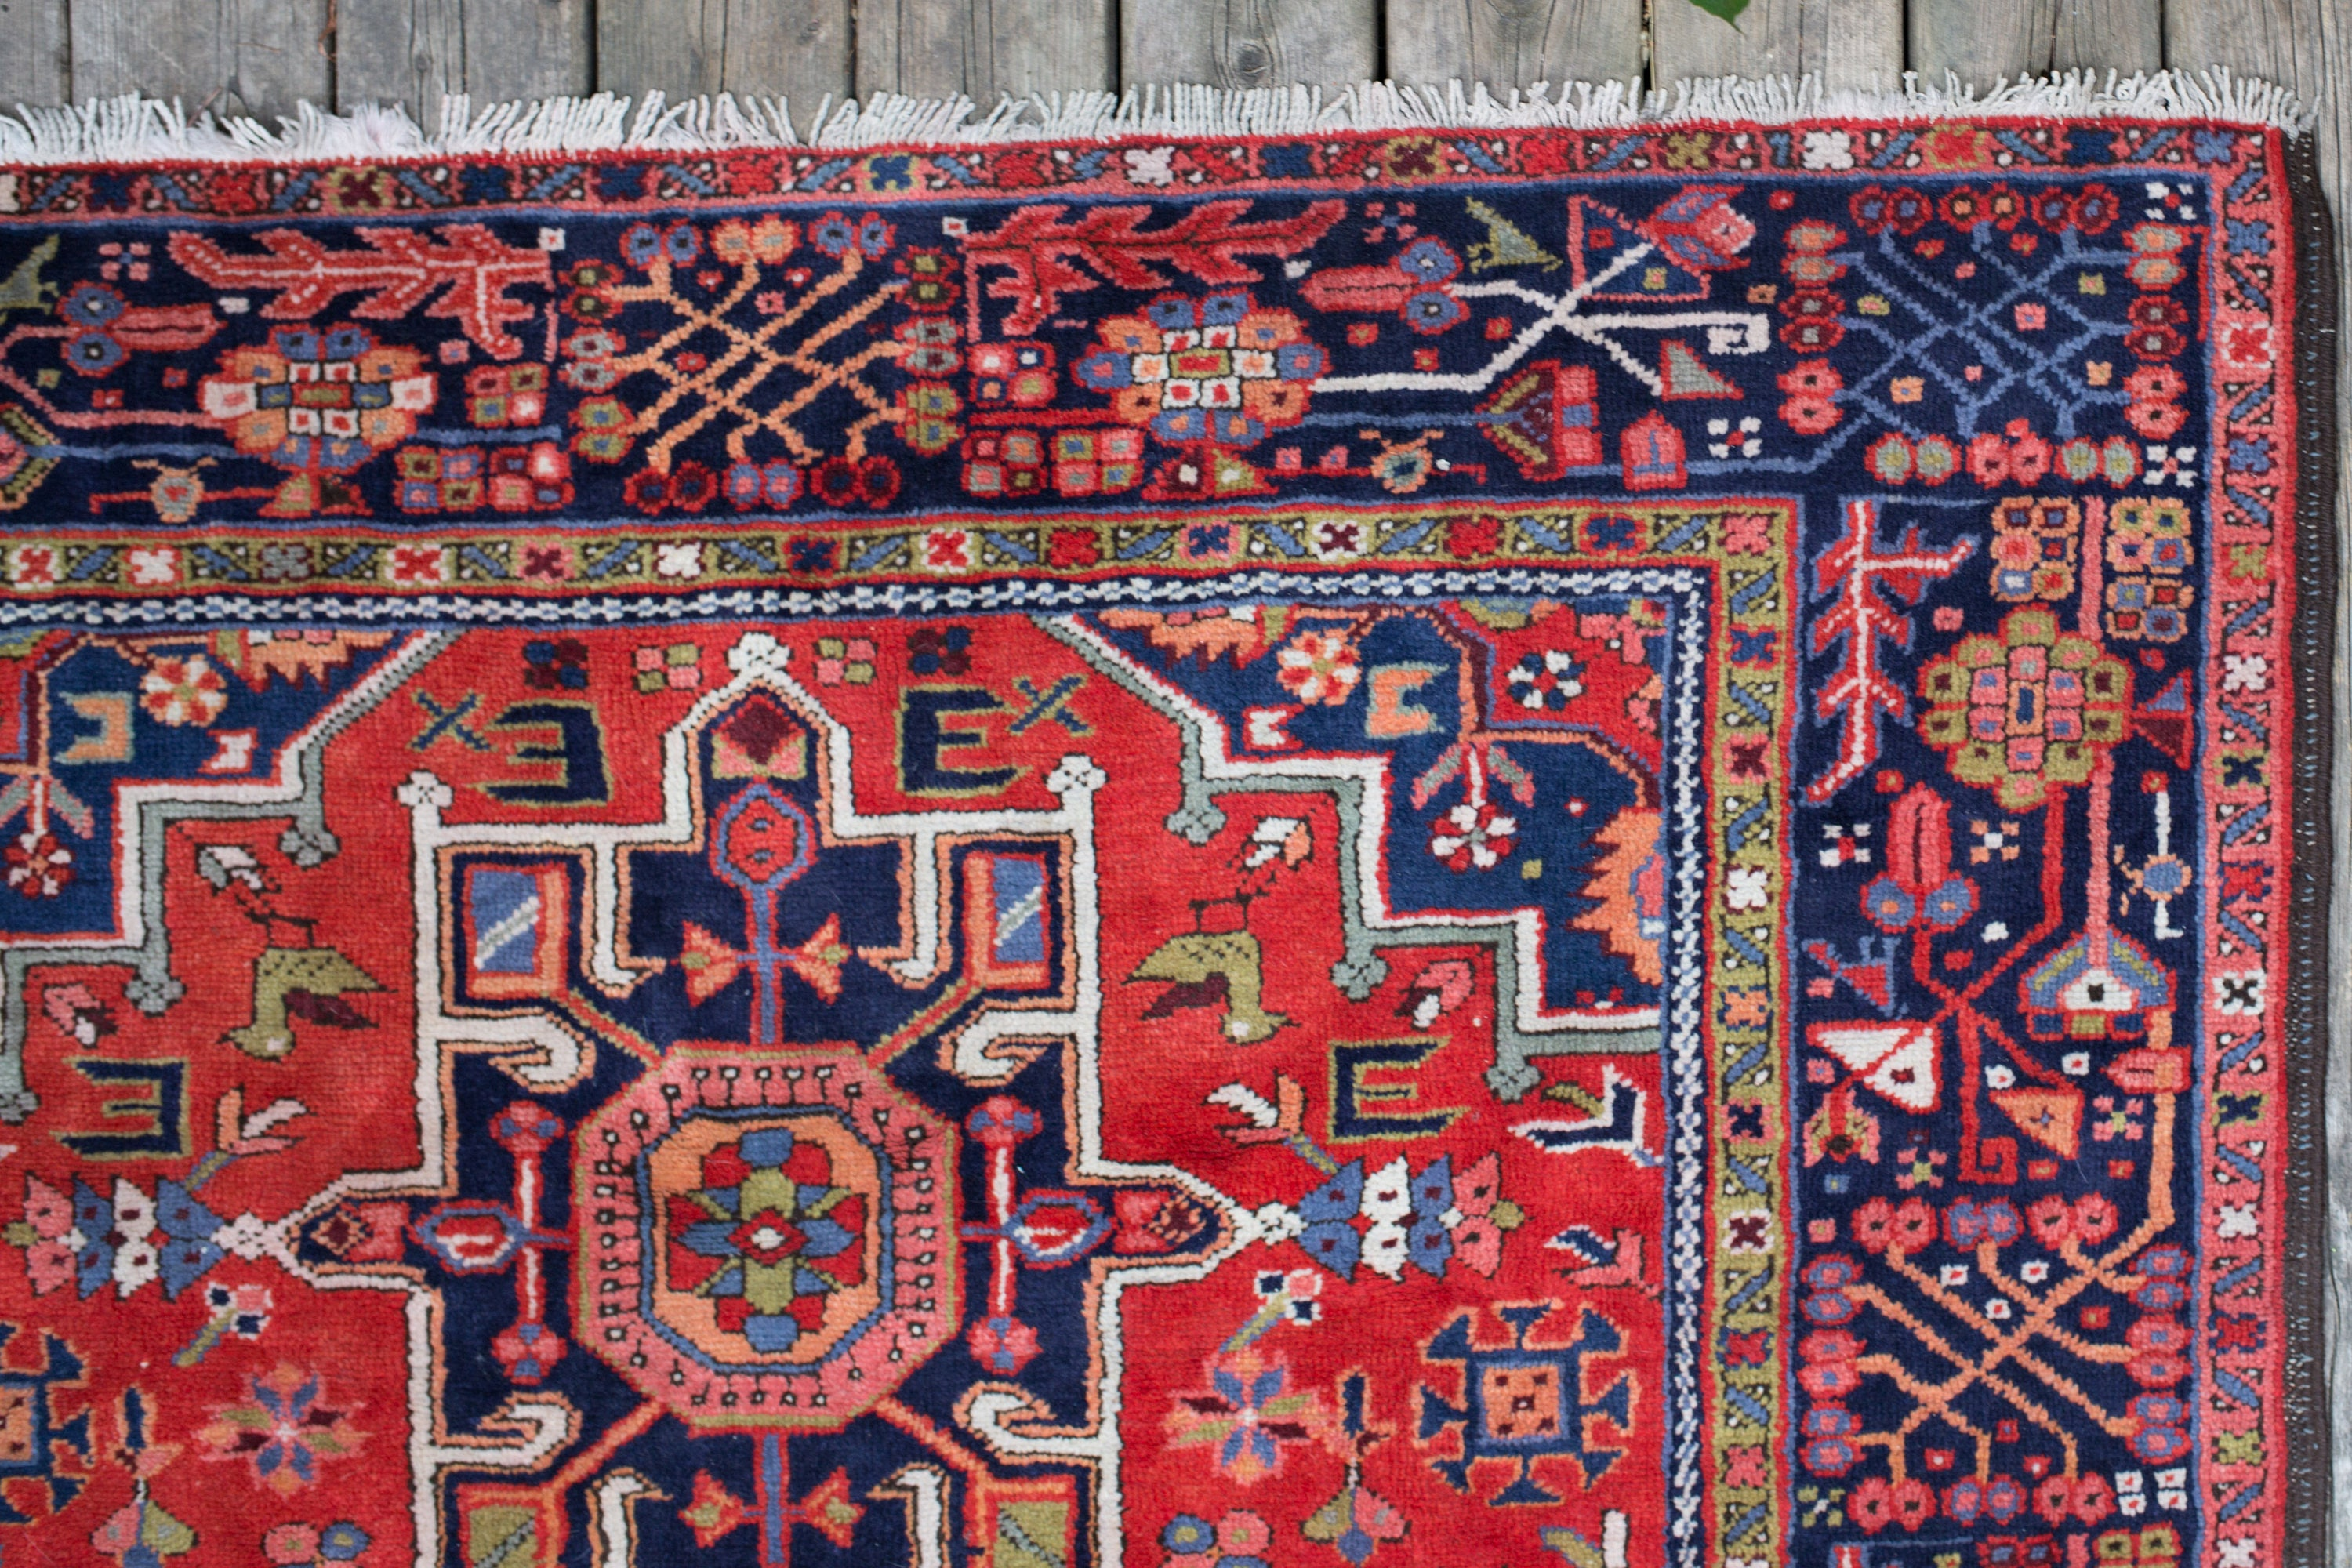 patterns rug bohemian your home matter of love layering color taste inspired rugs keep textiles decor plethora rooms schemeyou is no can the in layered i adding that or part img most